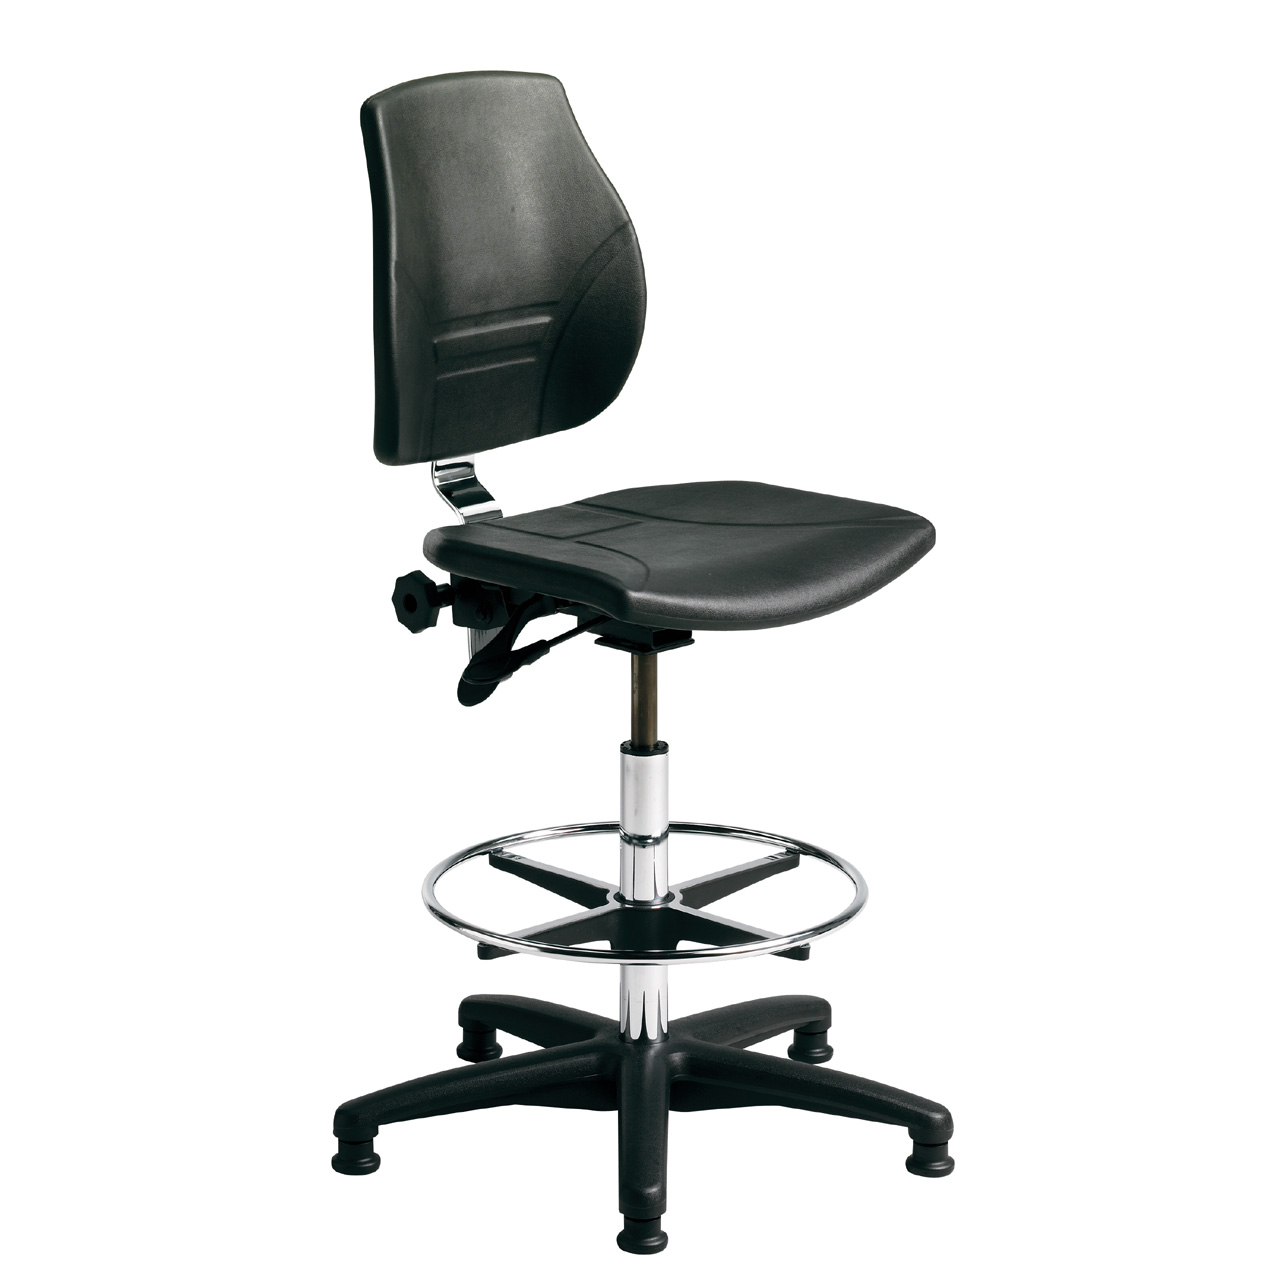 ergonomic chair description leather reclining chairs emergent crown